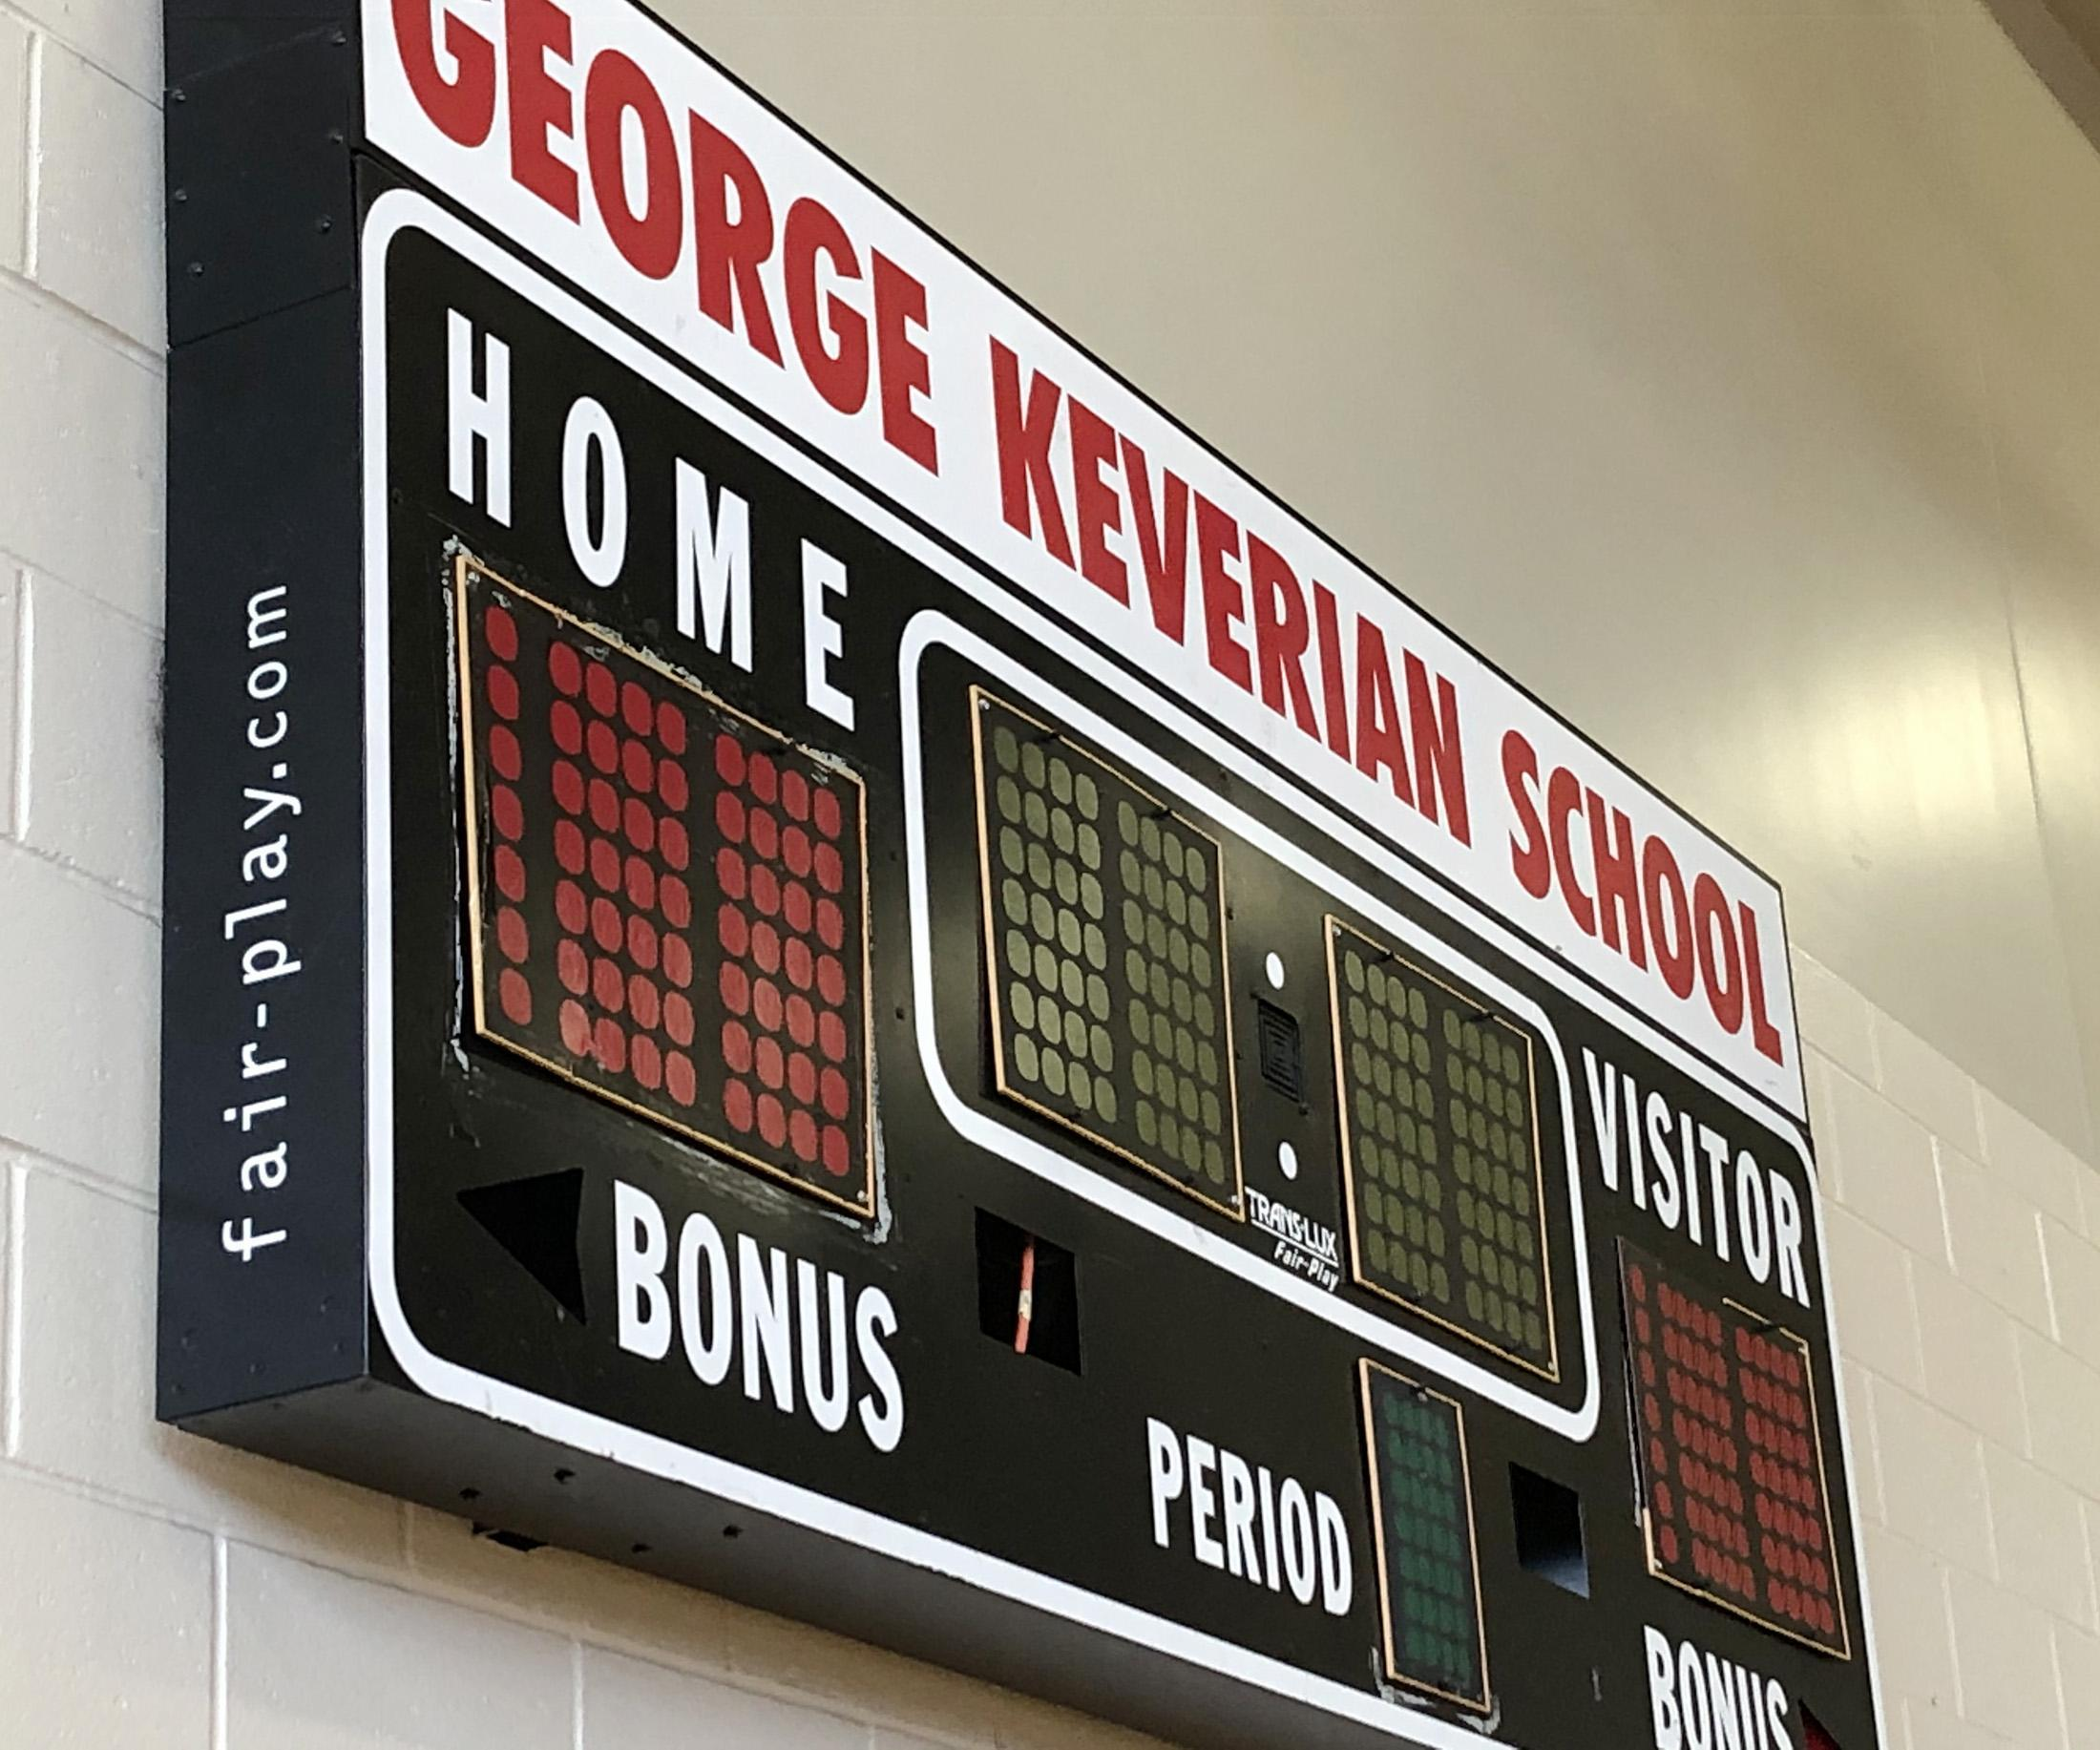 George Keverian School Scoreboard